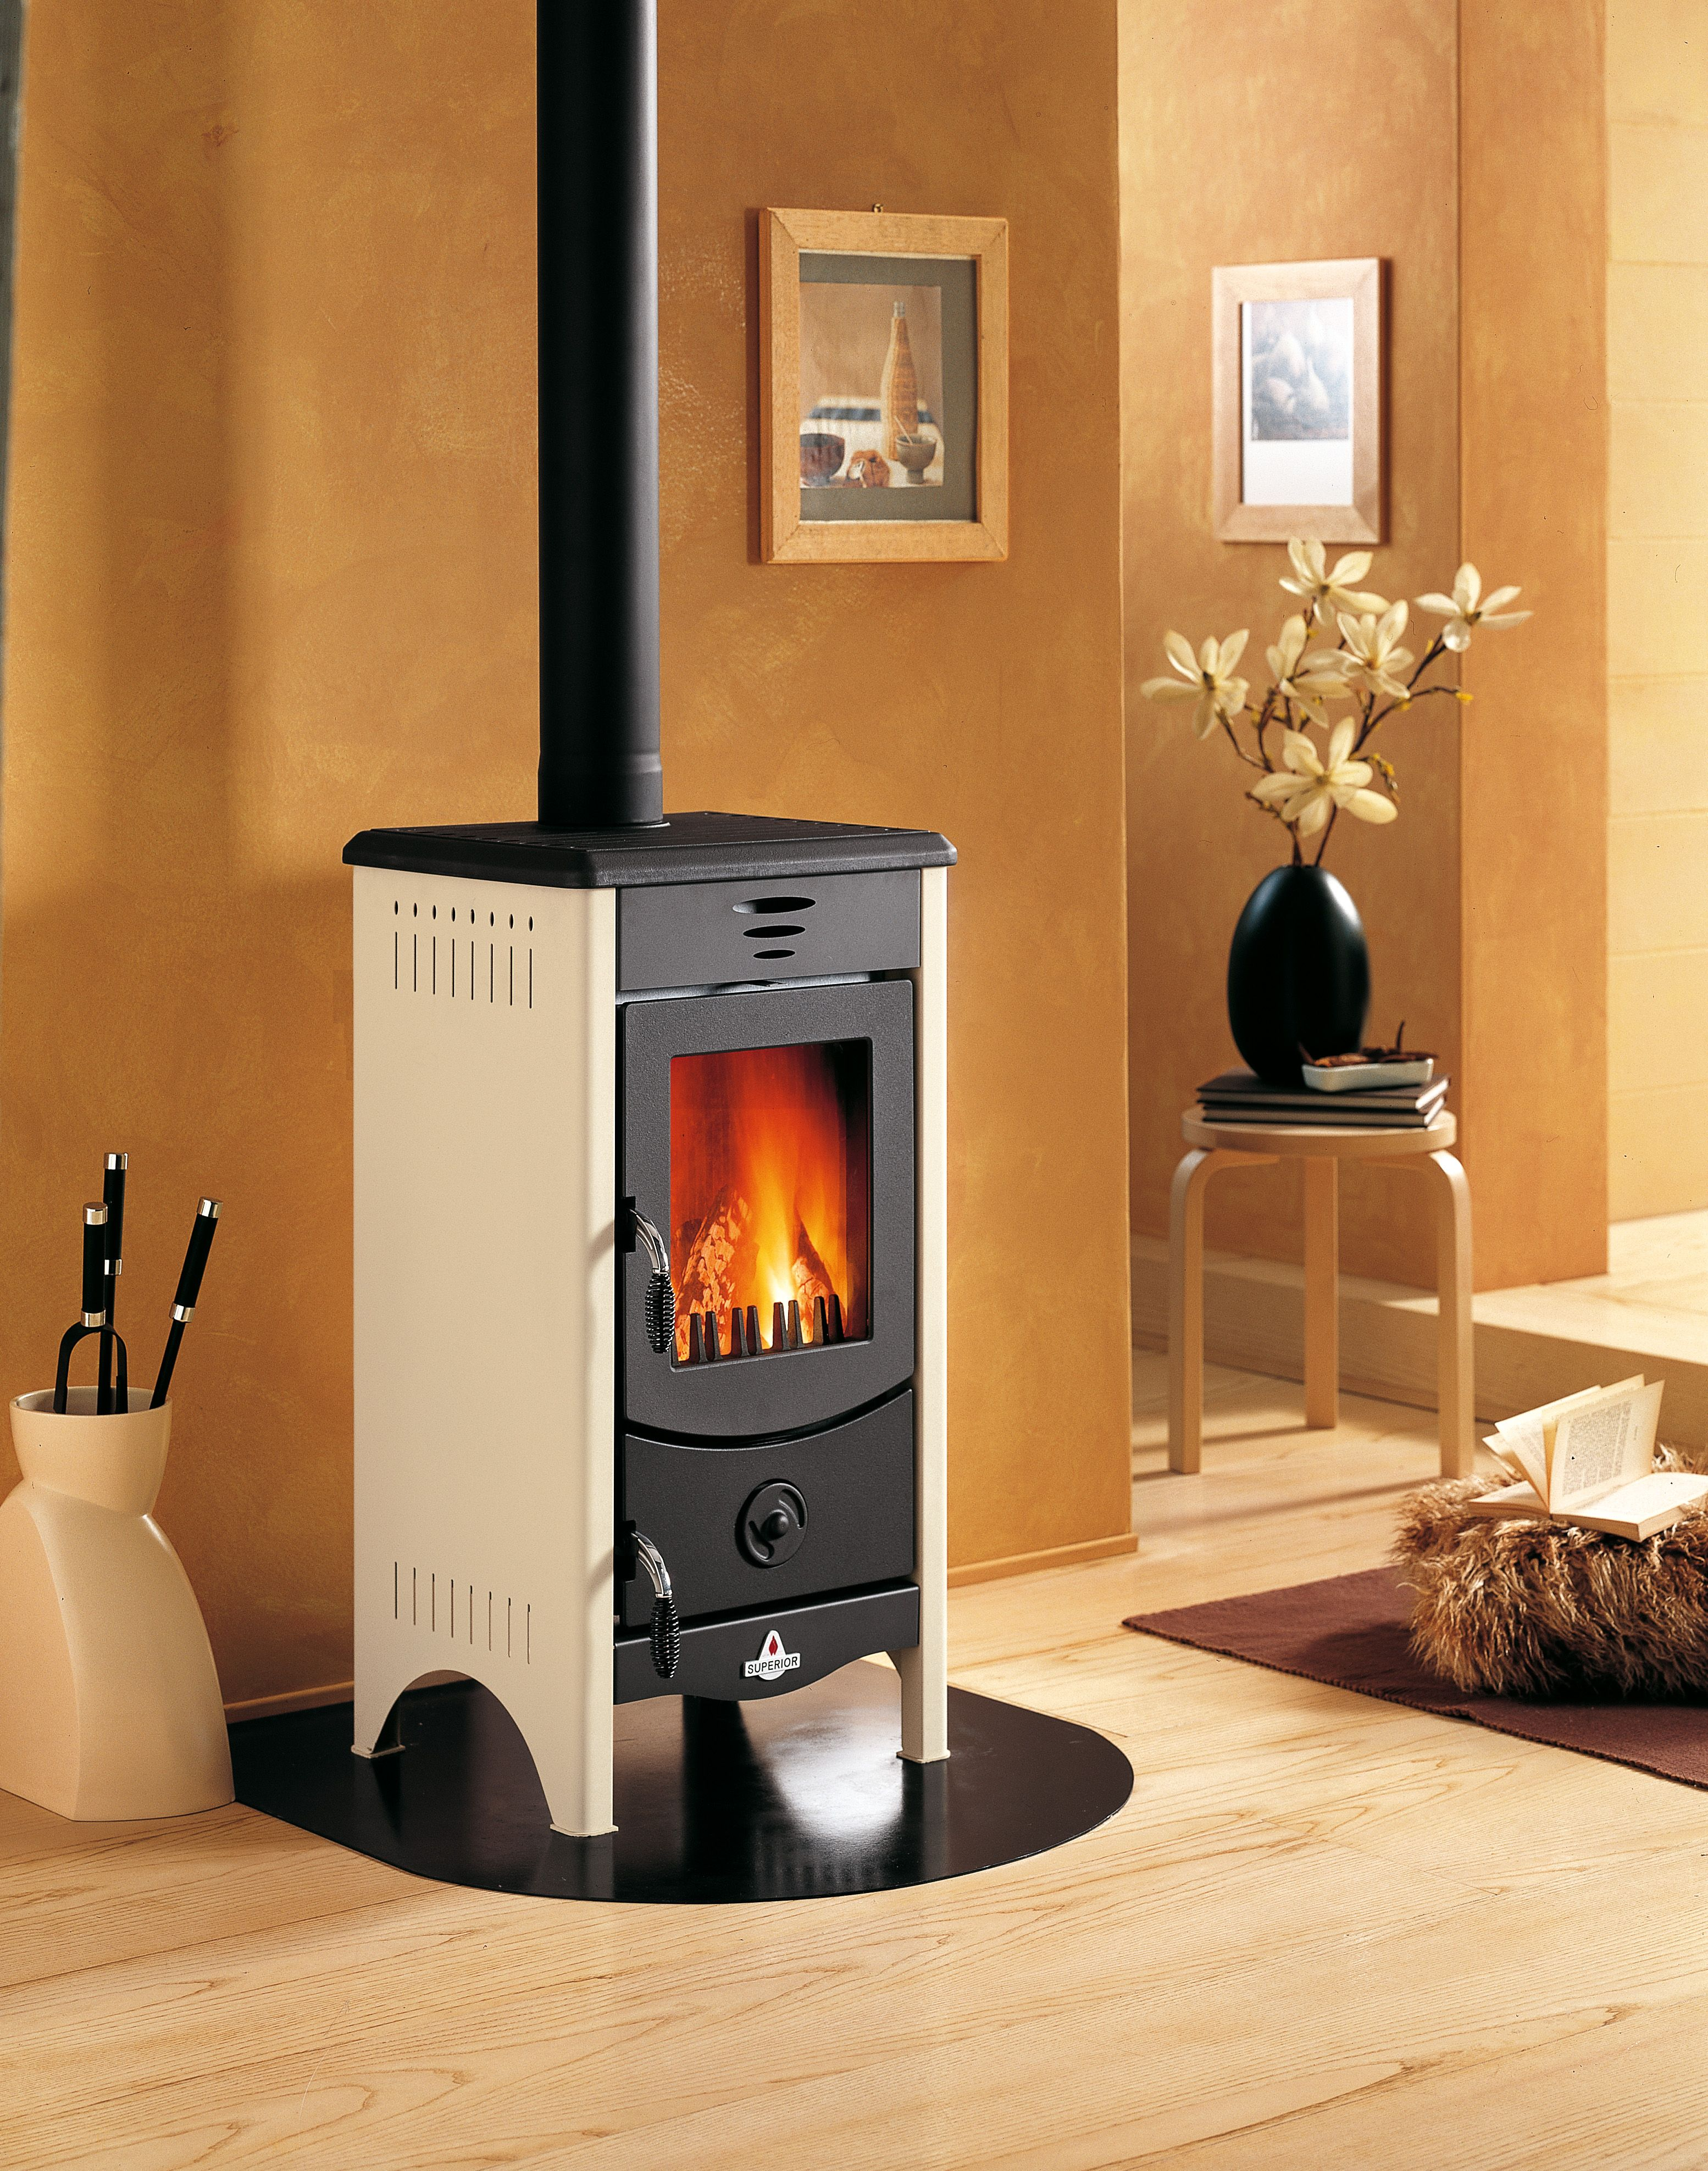 The Micaela Wood Burning Fireplace is a pact free standing